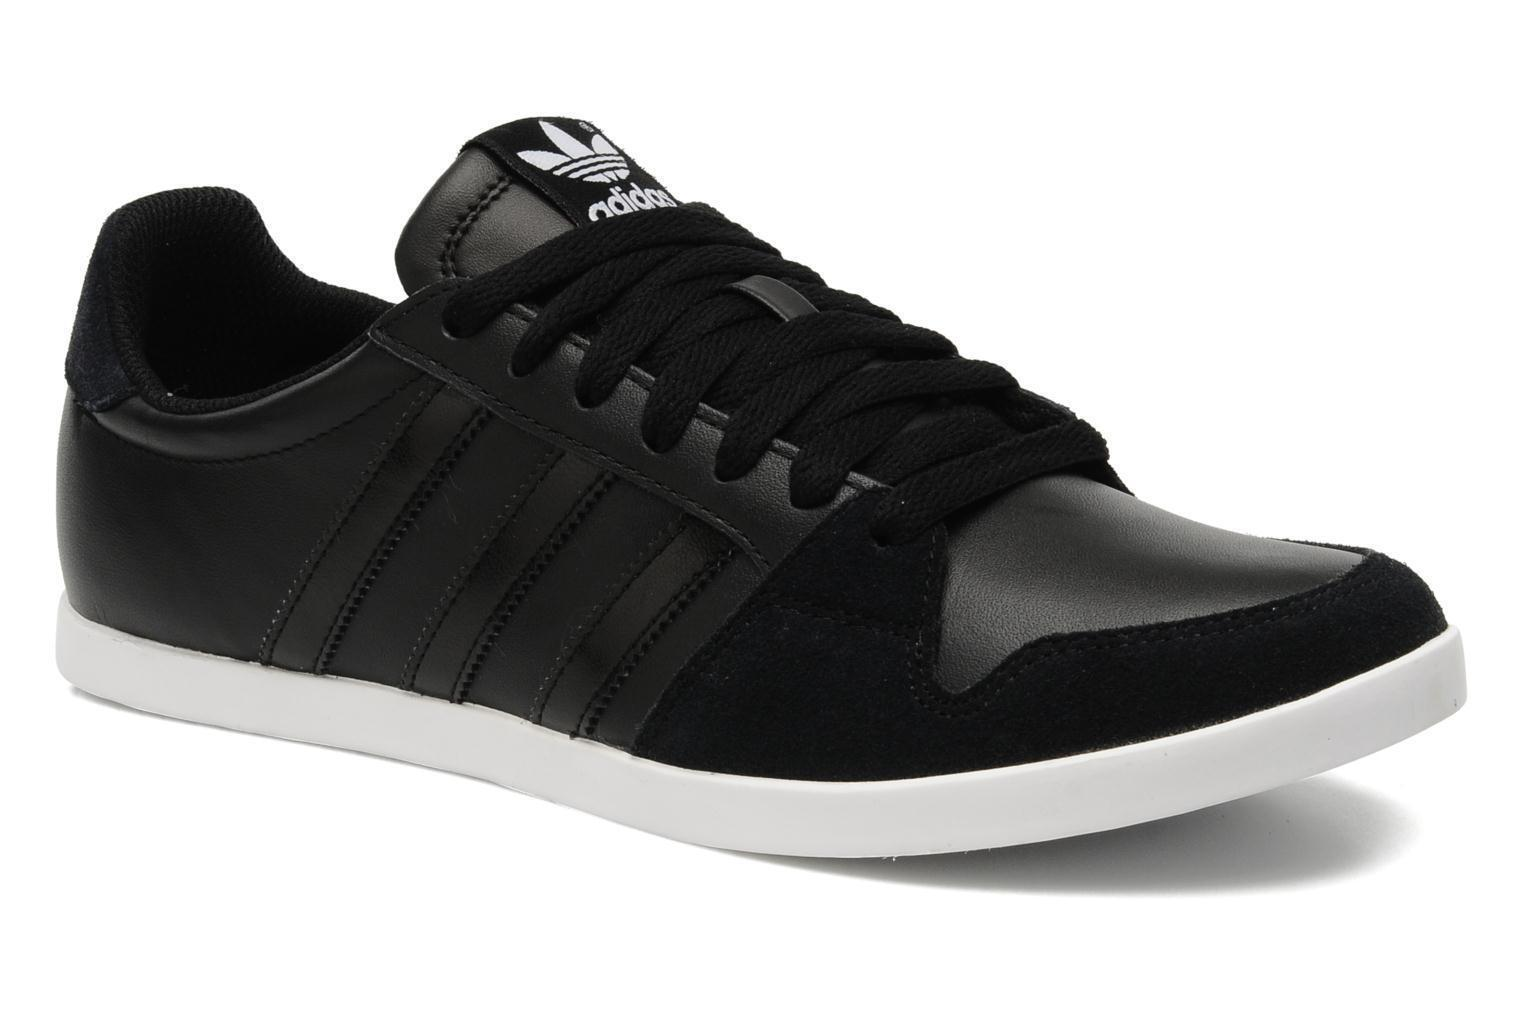 9cd8b9e75 Adidas Originals Adilago Low Mens Trainers Shoes New